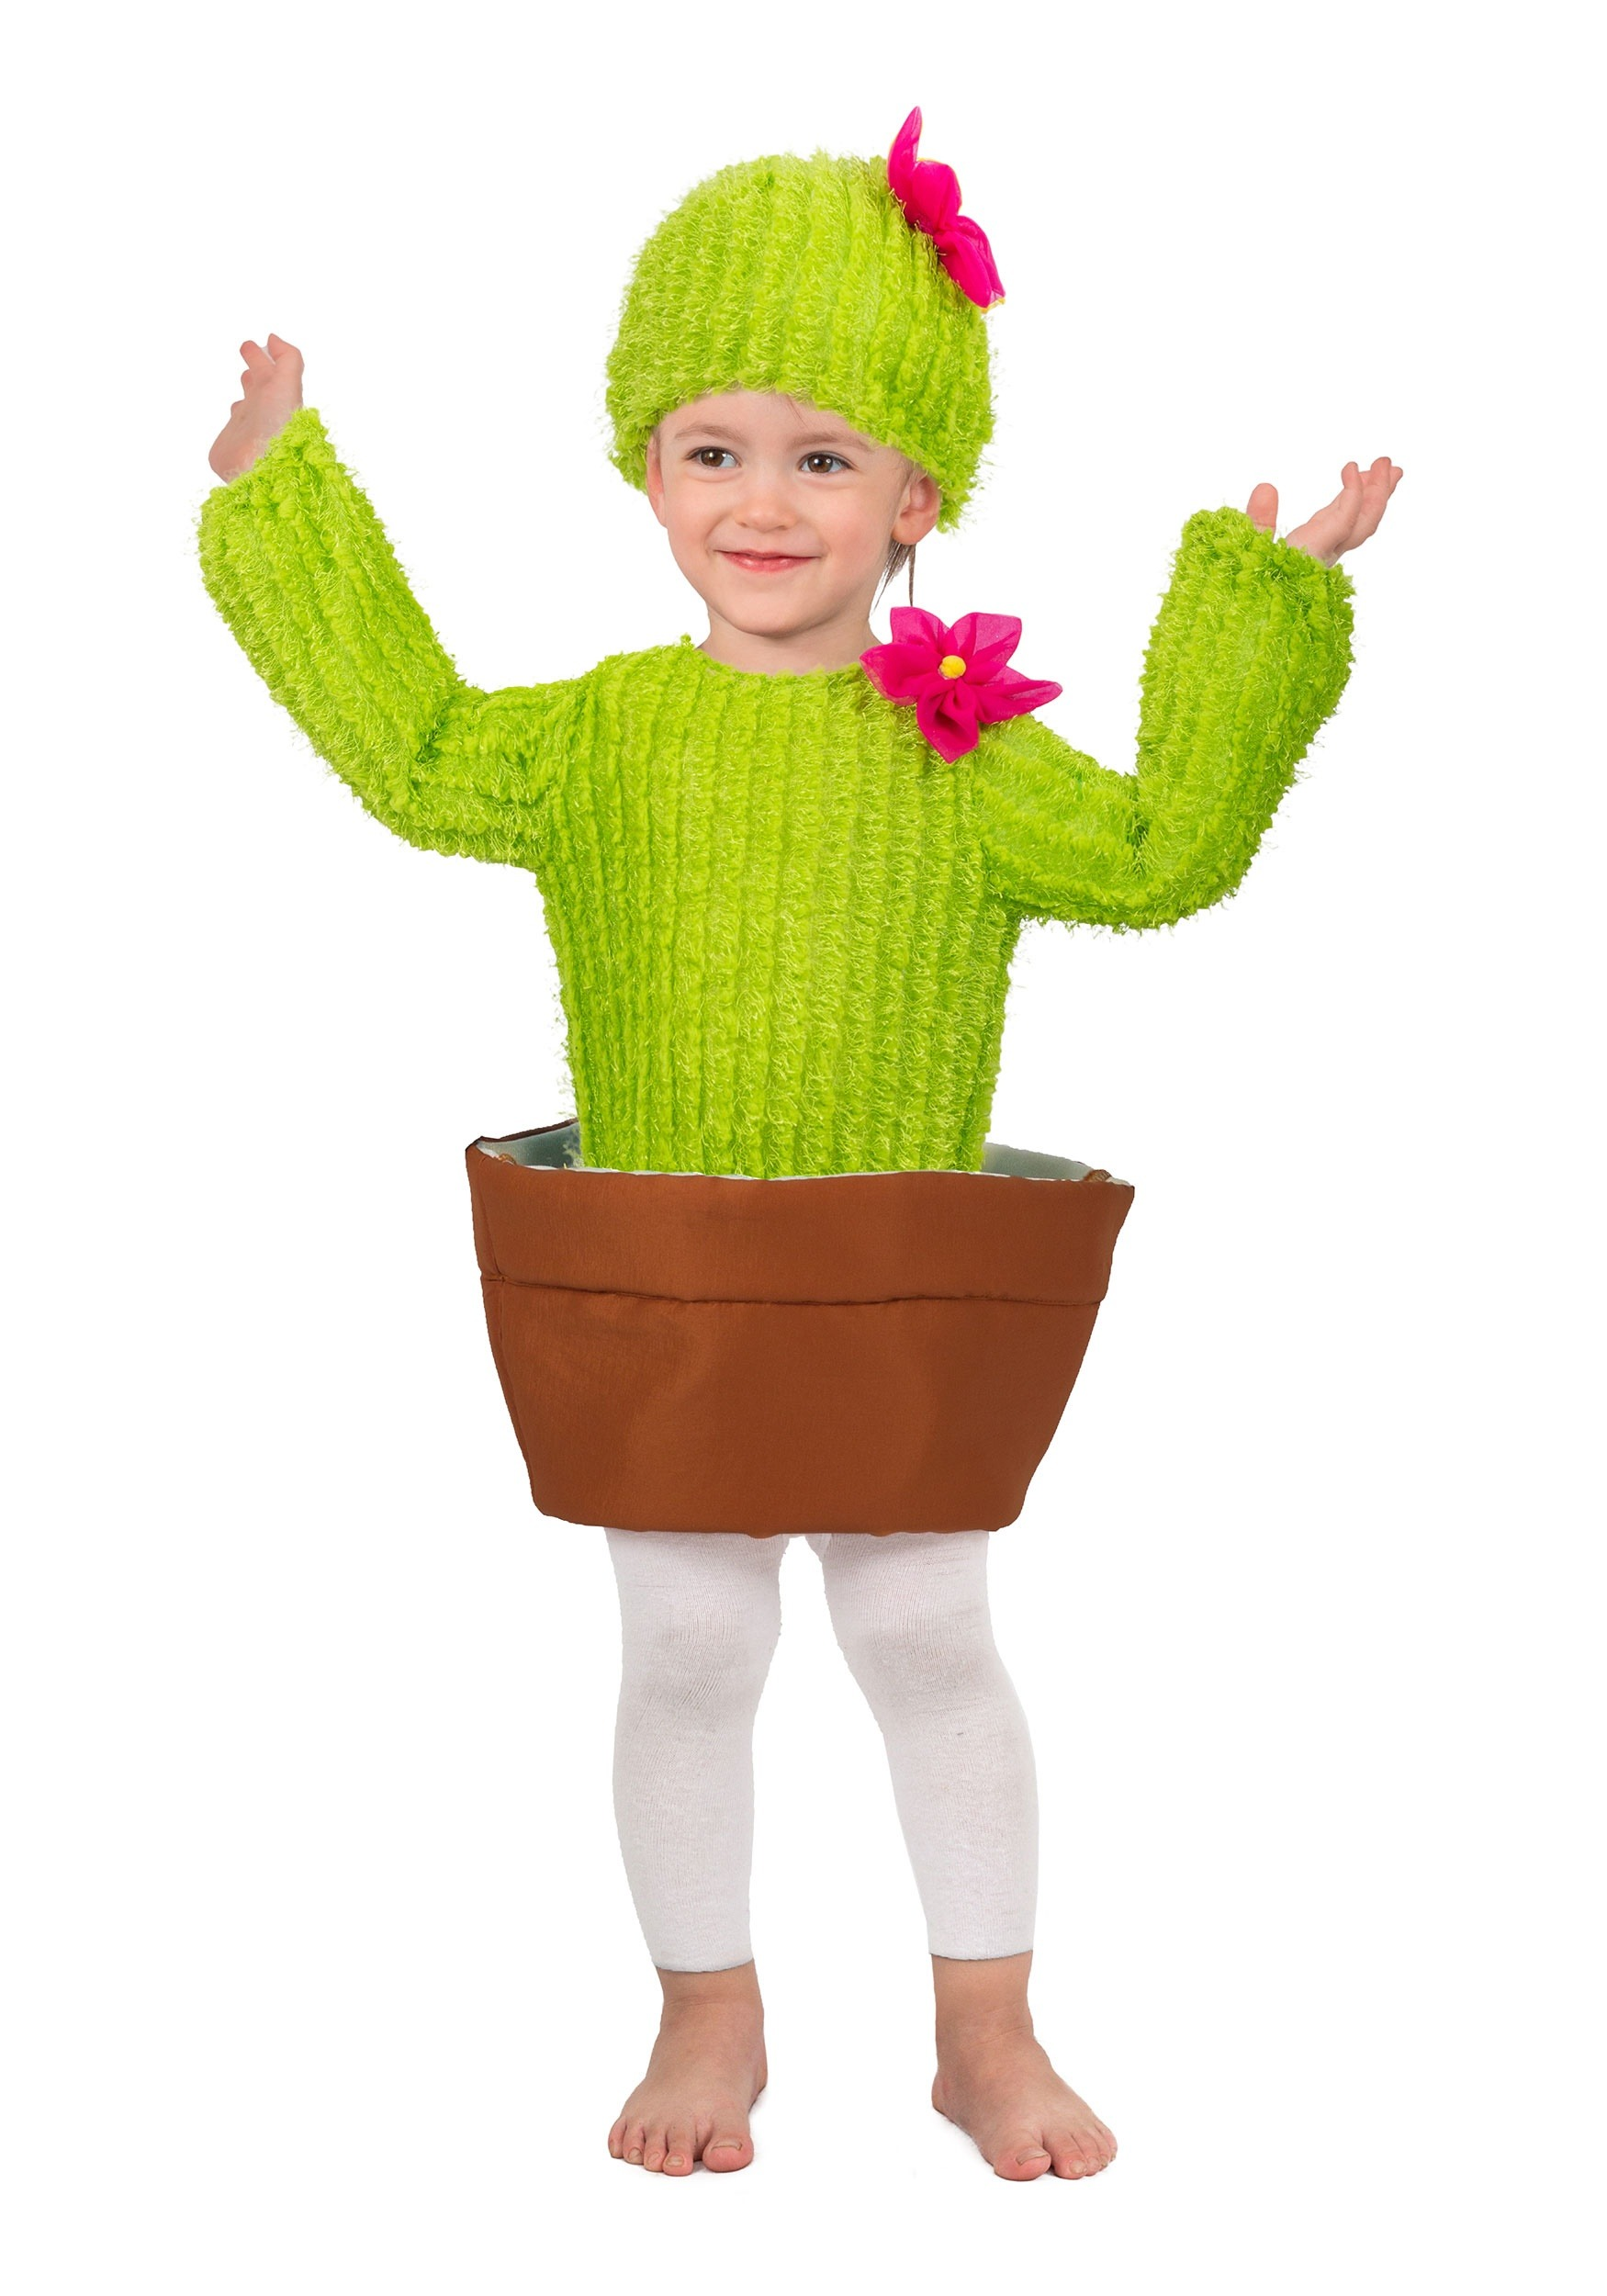 Prickles the Cactus Costume for a Child